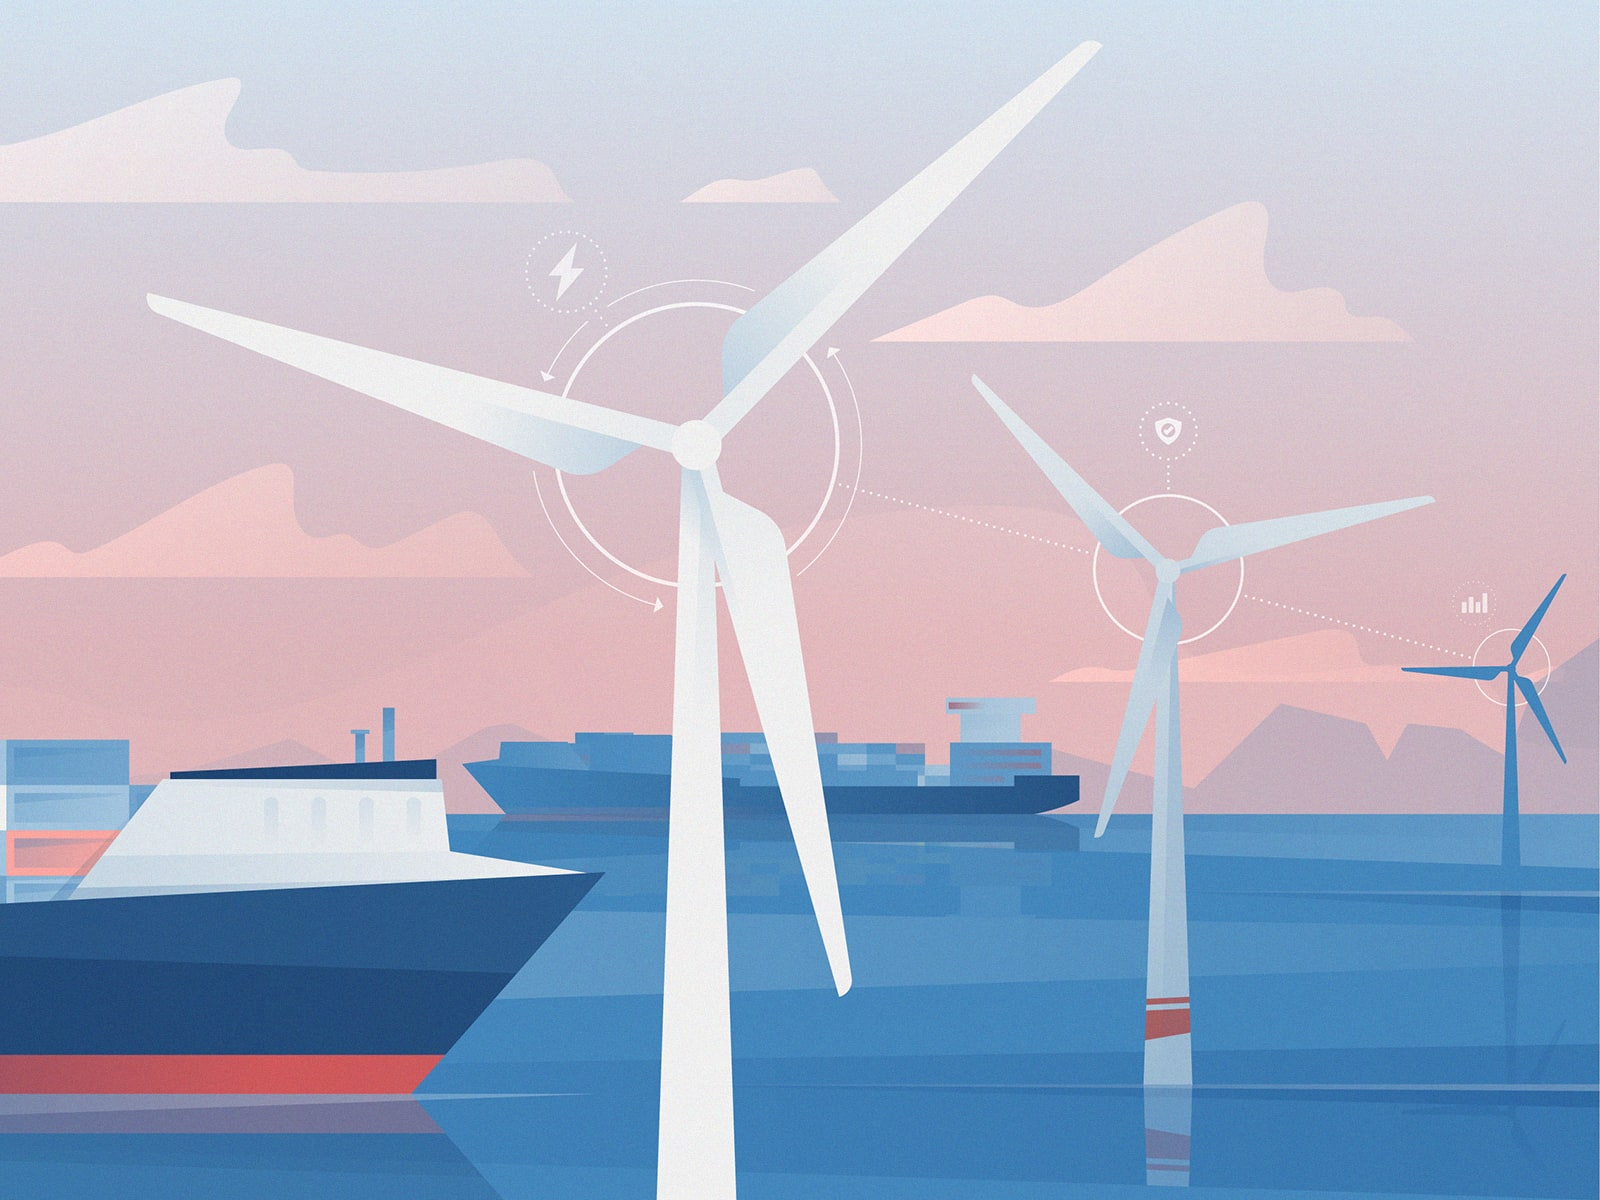 Wind turbines and ships at an offshore wind farm